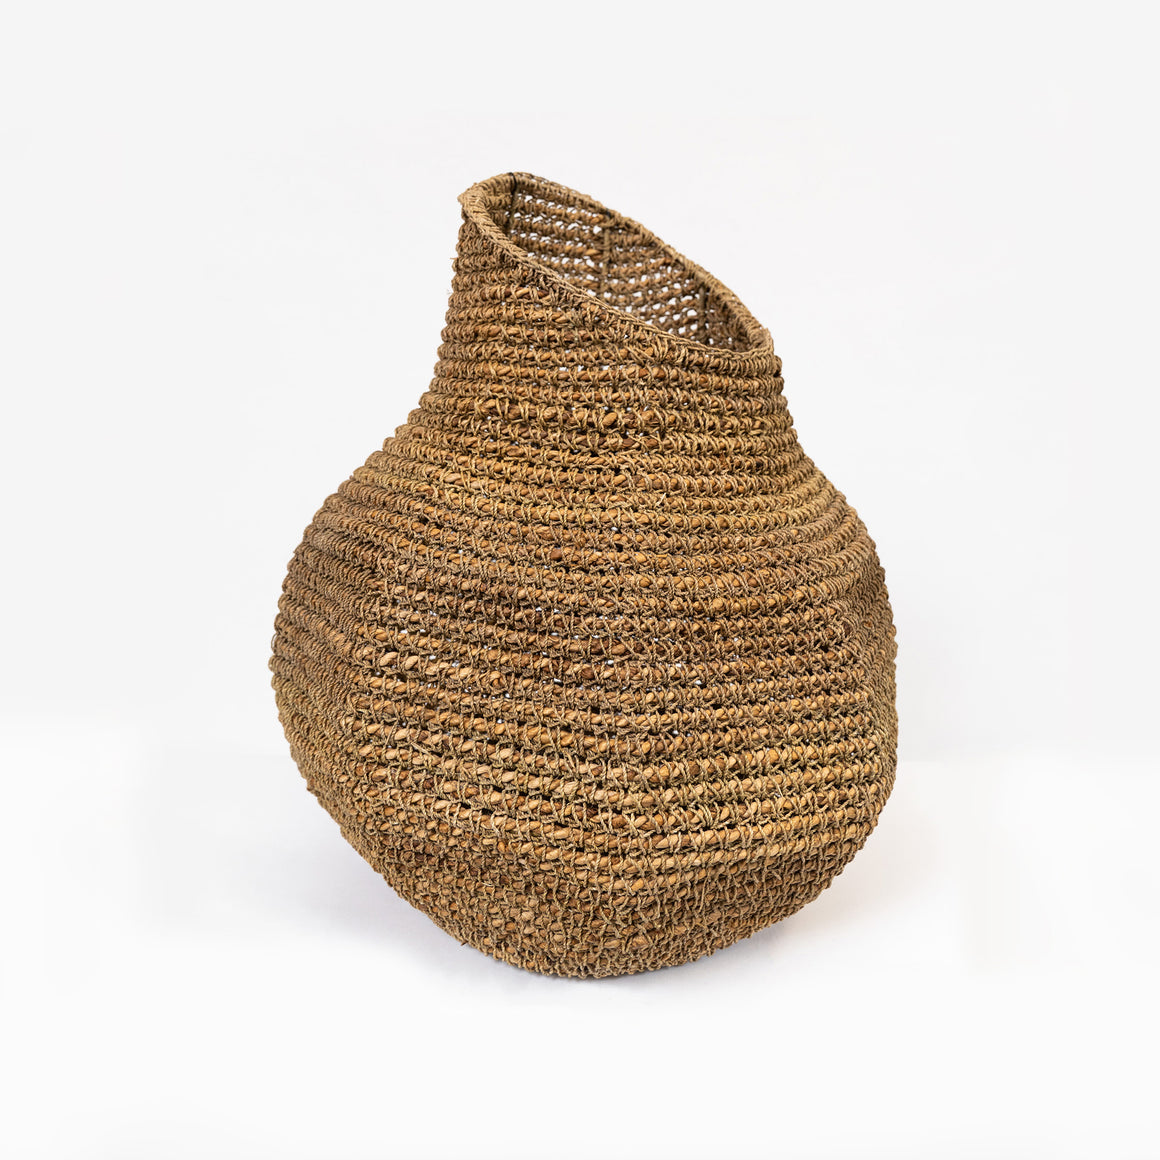 Handmade seagrass boab shaped vessel.